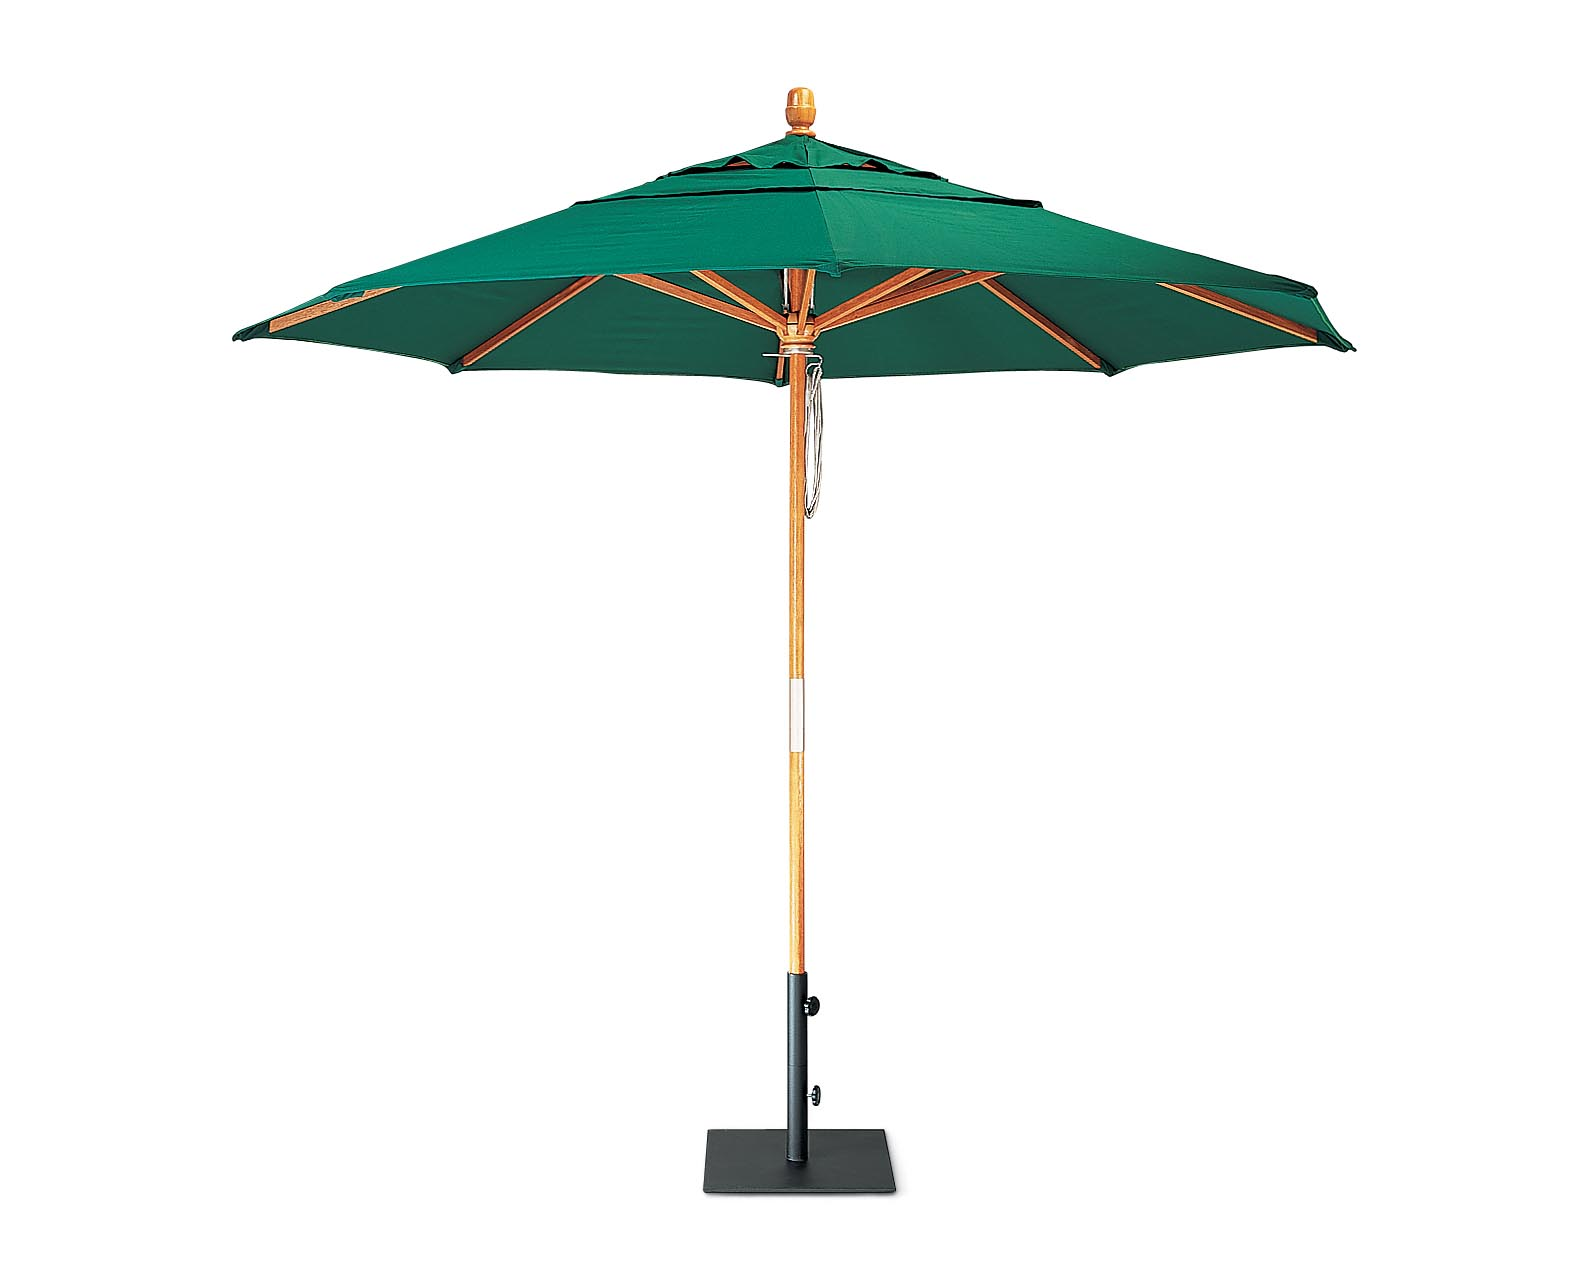 Umbrellas BenchSmithcom Crafters of Classic Teak  : umbrella1 from benchsmith.com size 1585 x 1262 jpeg 87kB